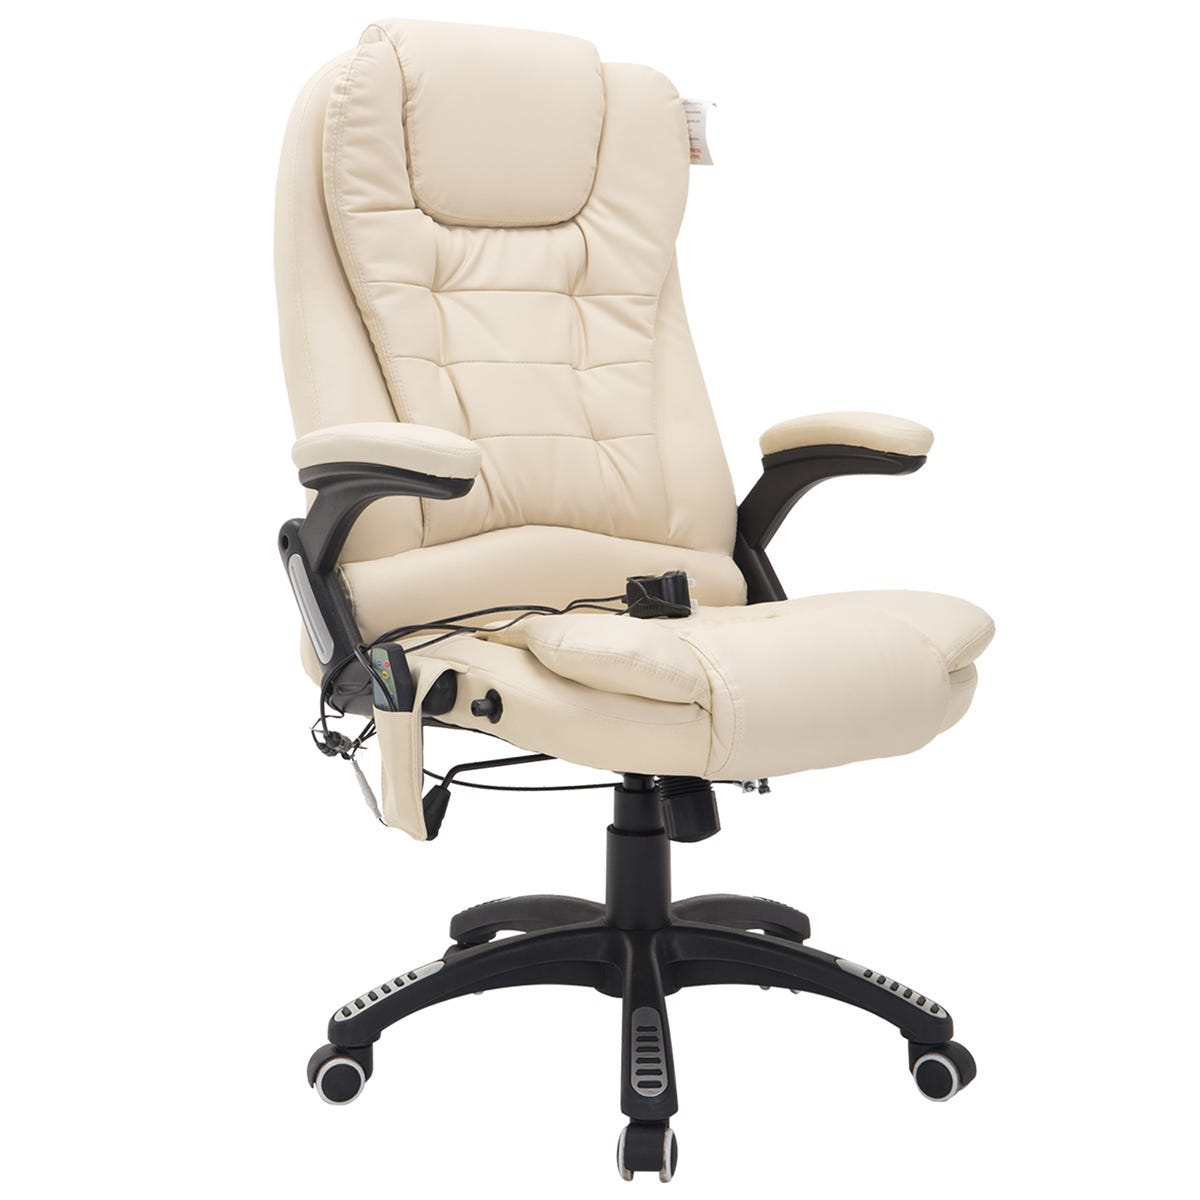 Zennor PU Leather Office Chair with Massage Function - Cream